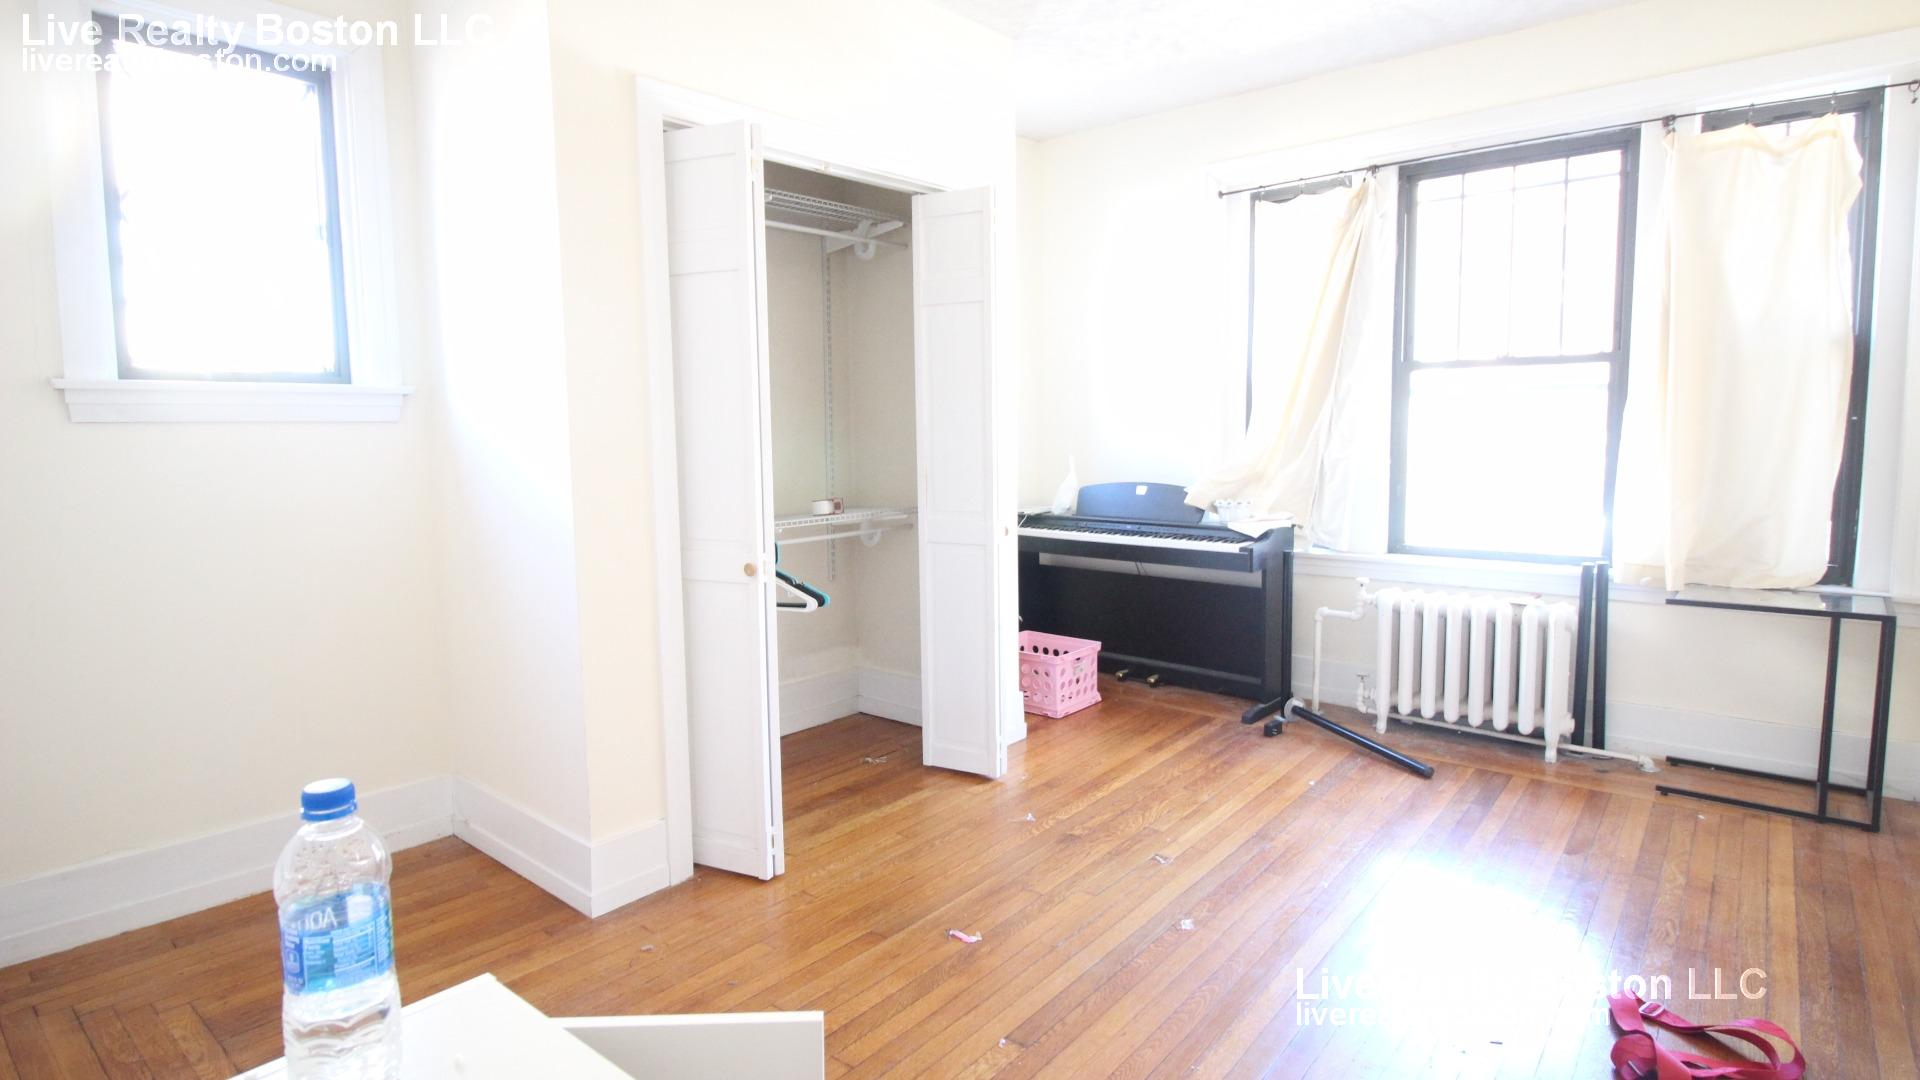 3 - BEAUTIFUL 3 BED 1 BATH ~IN THE HEART OF FENWAY~